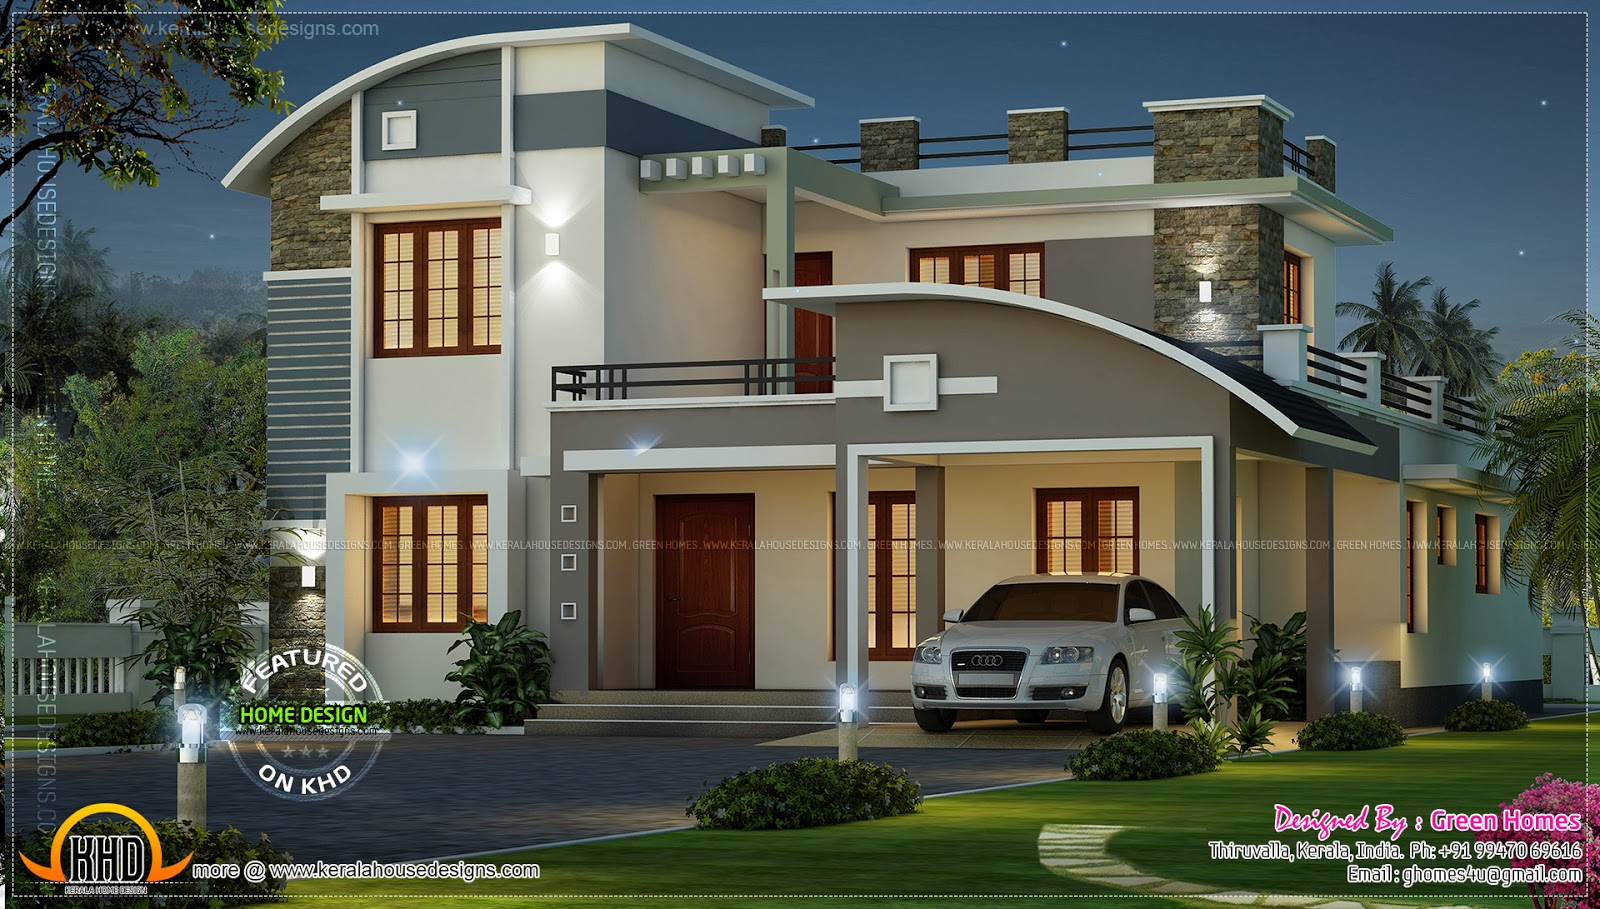 Modern beautiful home kerala home design and floor plans for 4 bedroom house plans kerala style architect